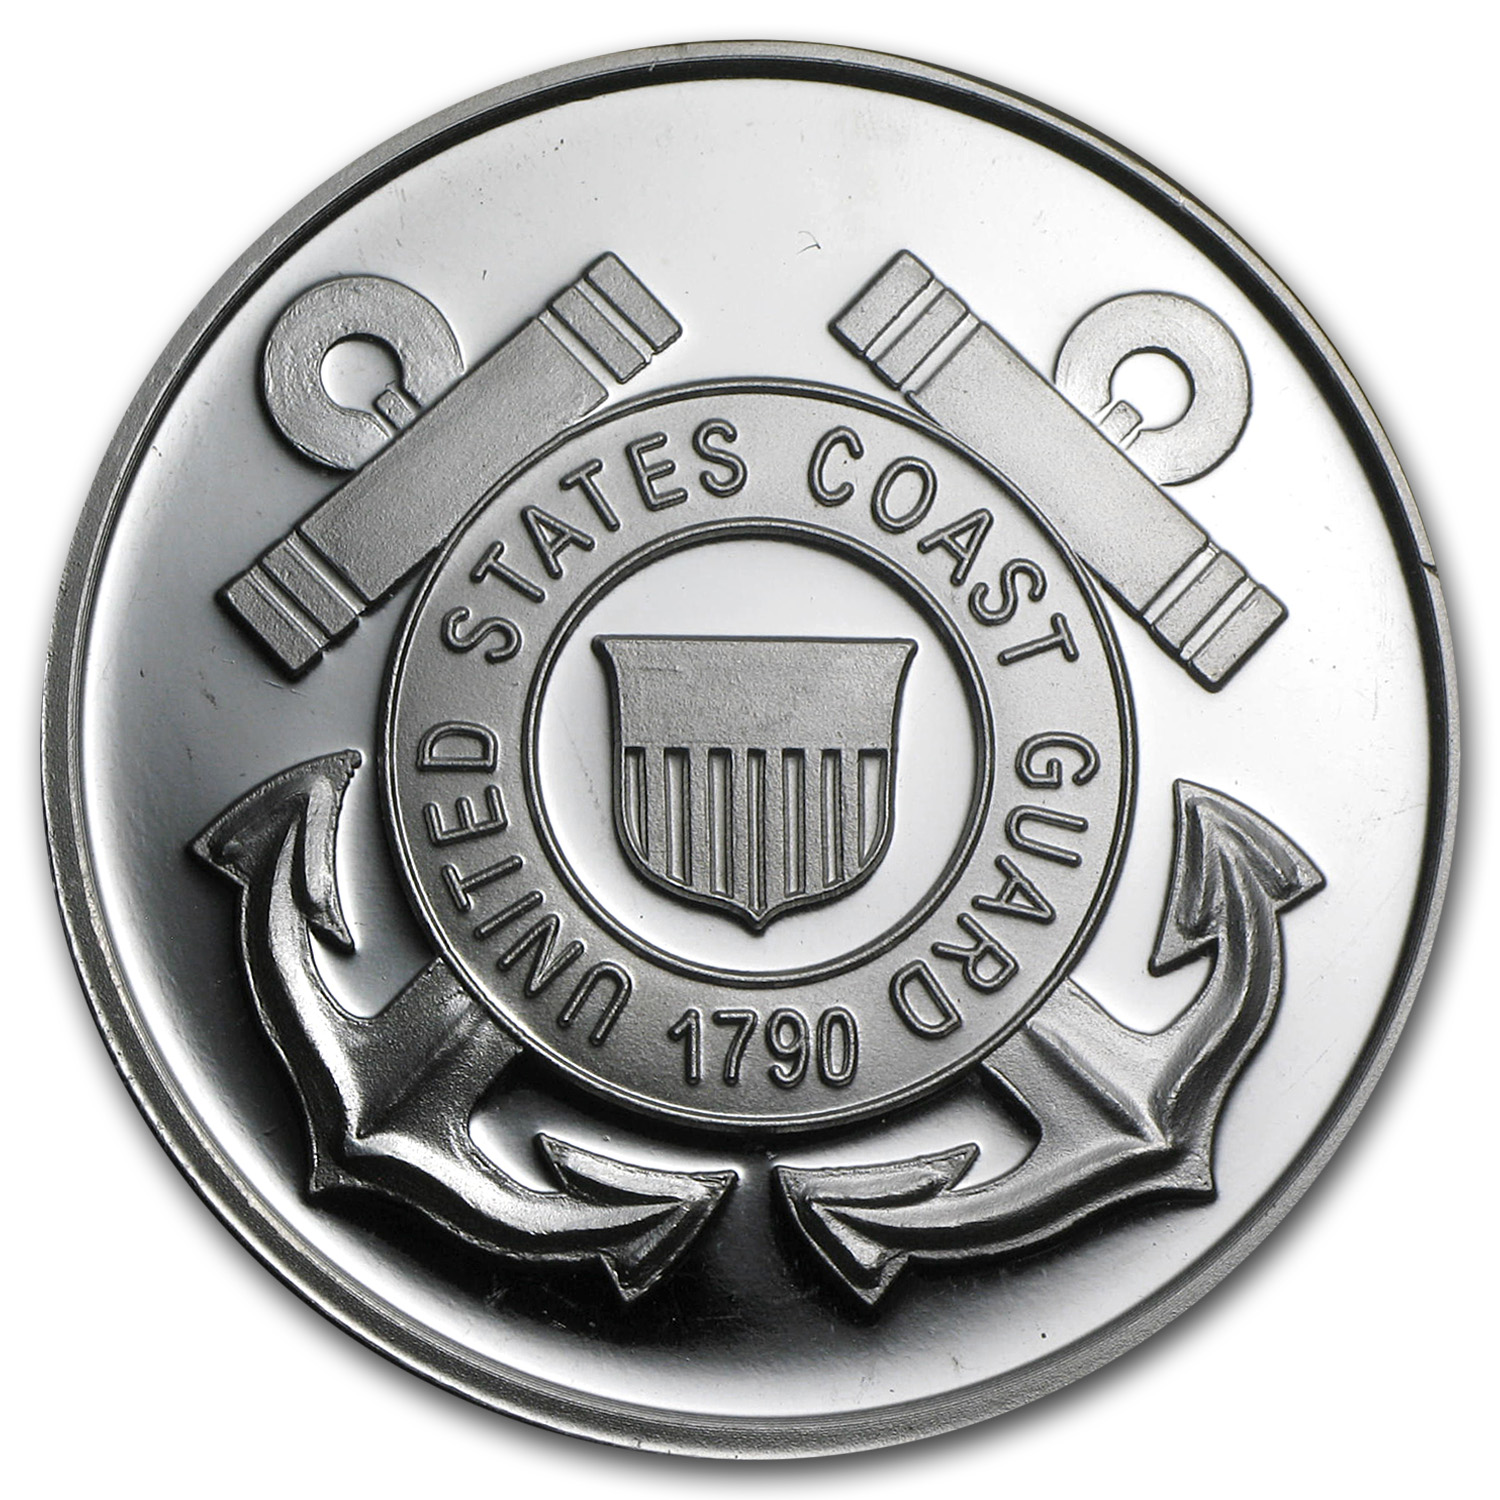 1 oz Silver Round - U.S. Coast Guard